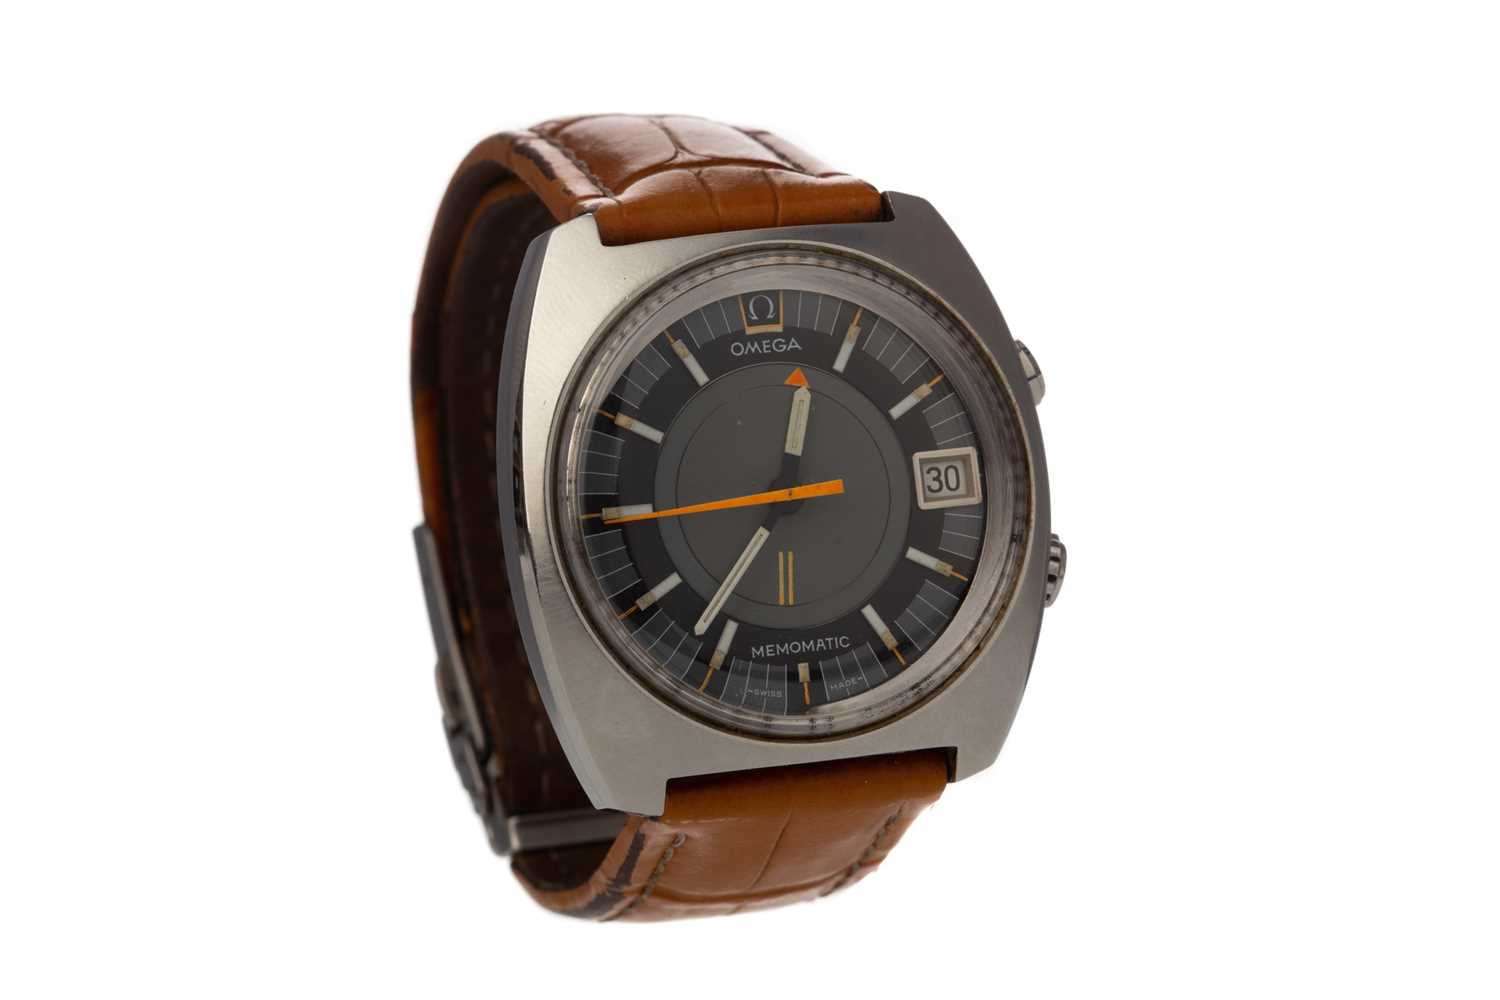 A GENTLEMAN'S OMEGA MEMOMATIC STAINLESS STEEL AUTOMATIC WRIST WATCH